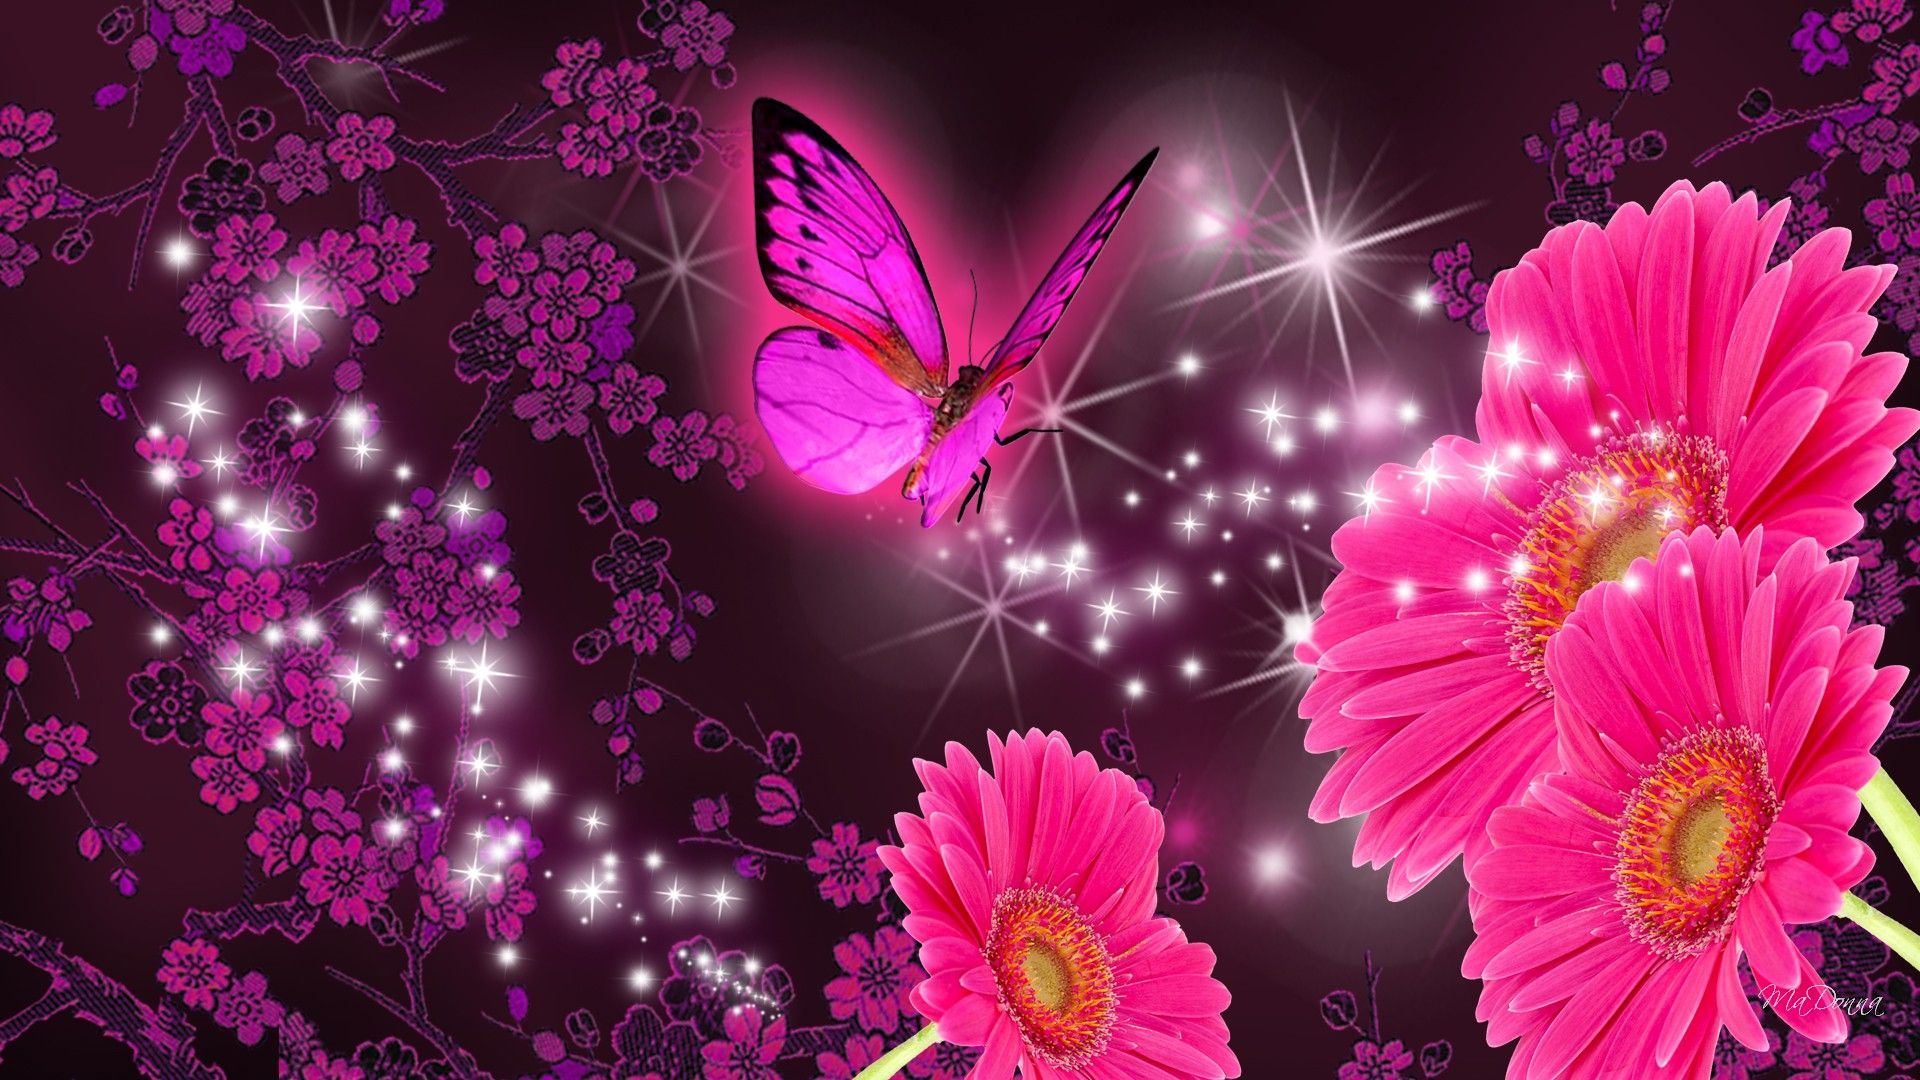 Pink Butterfly Wallpapers - Top Free Pink Butterfly ...